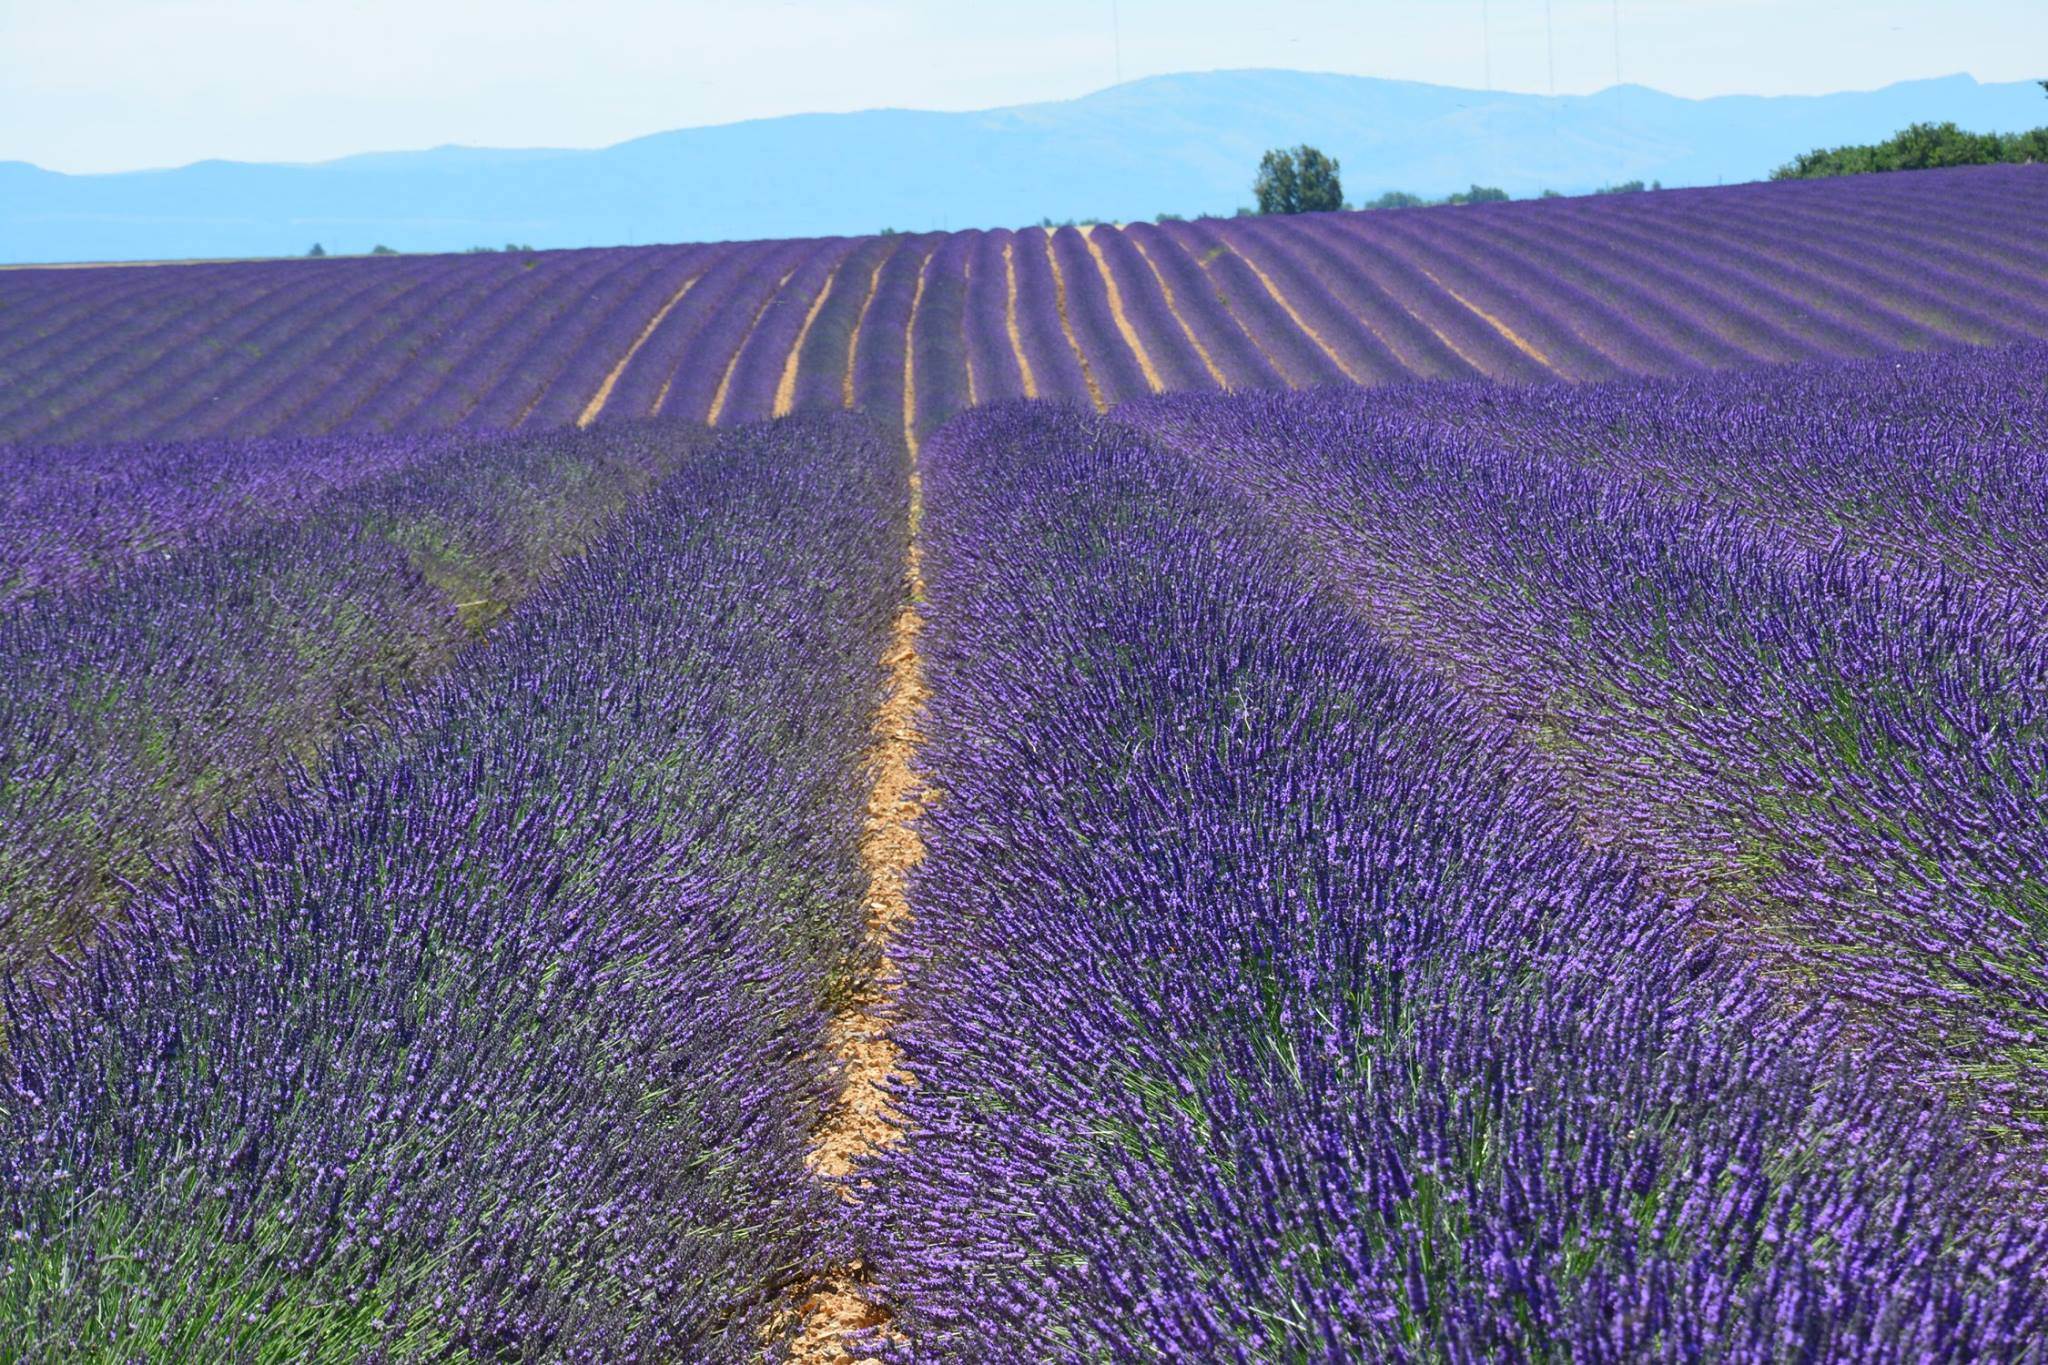 UNIQUE PROVENCE Private Tours & Excursions of Provence